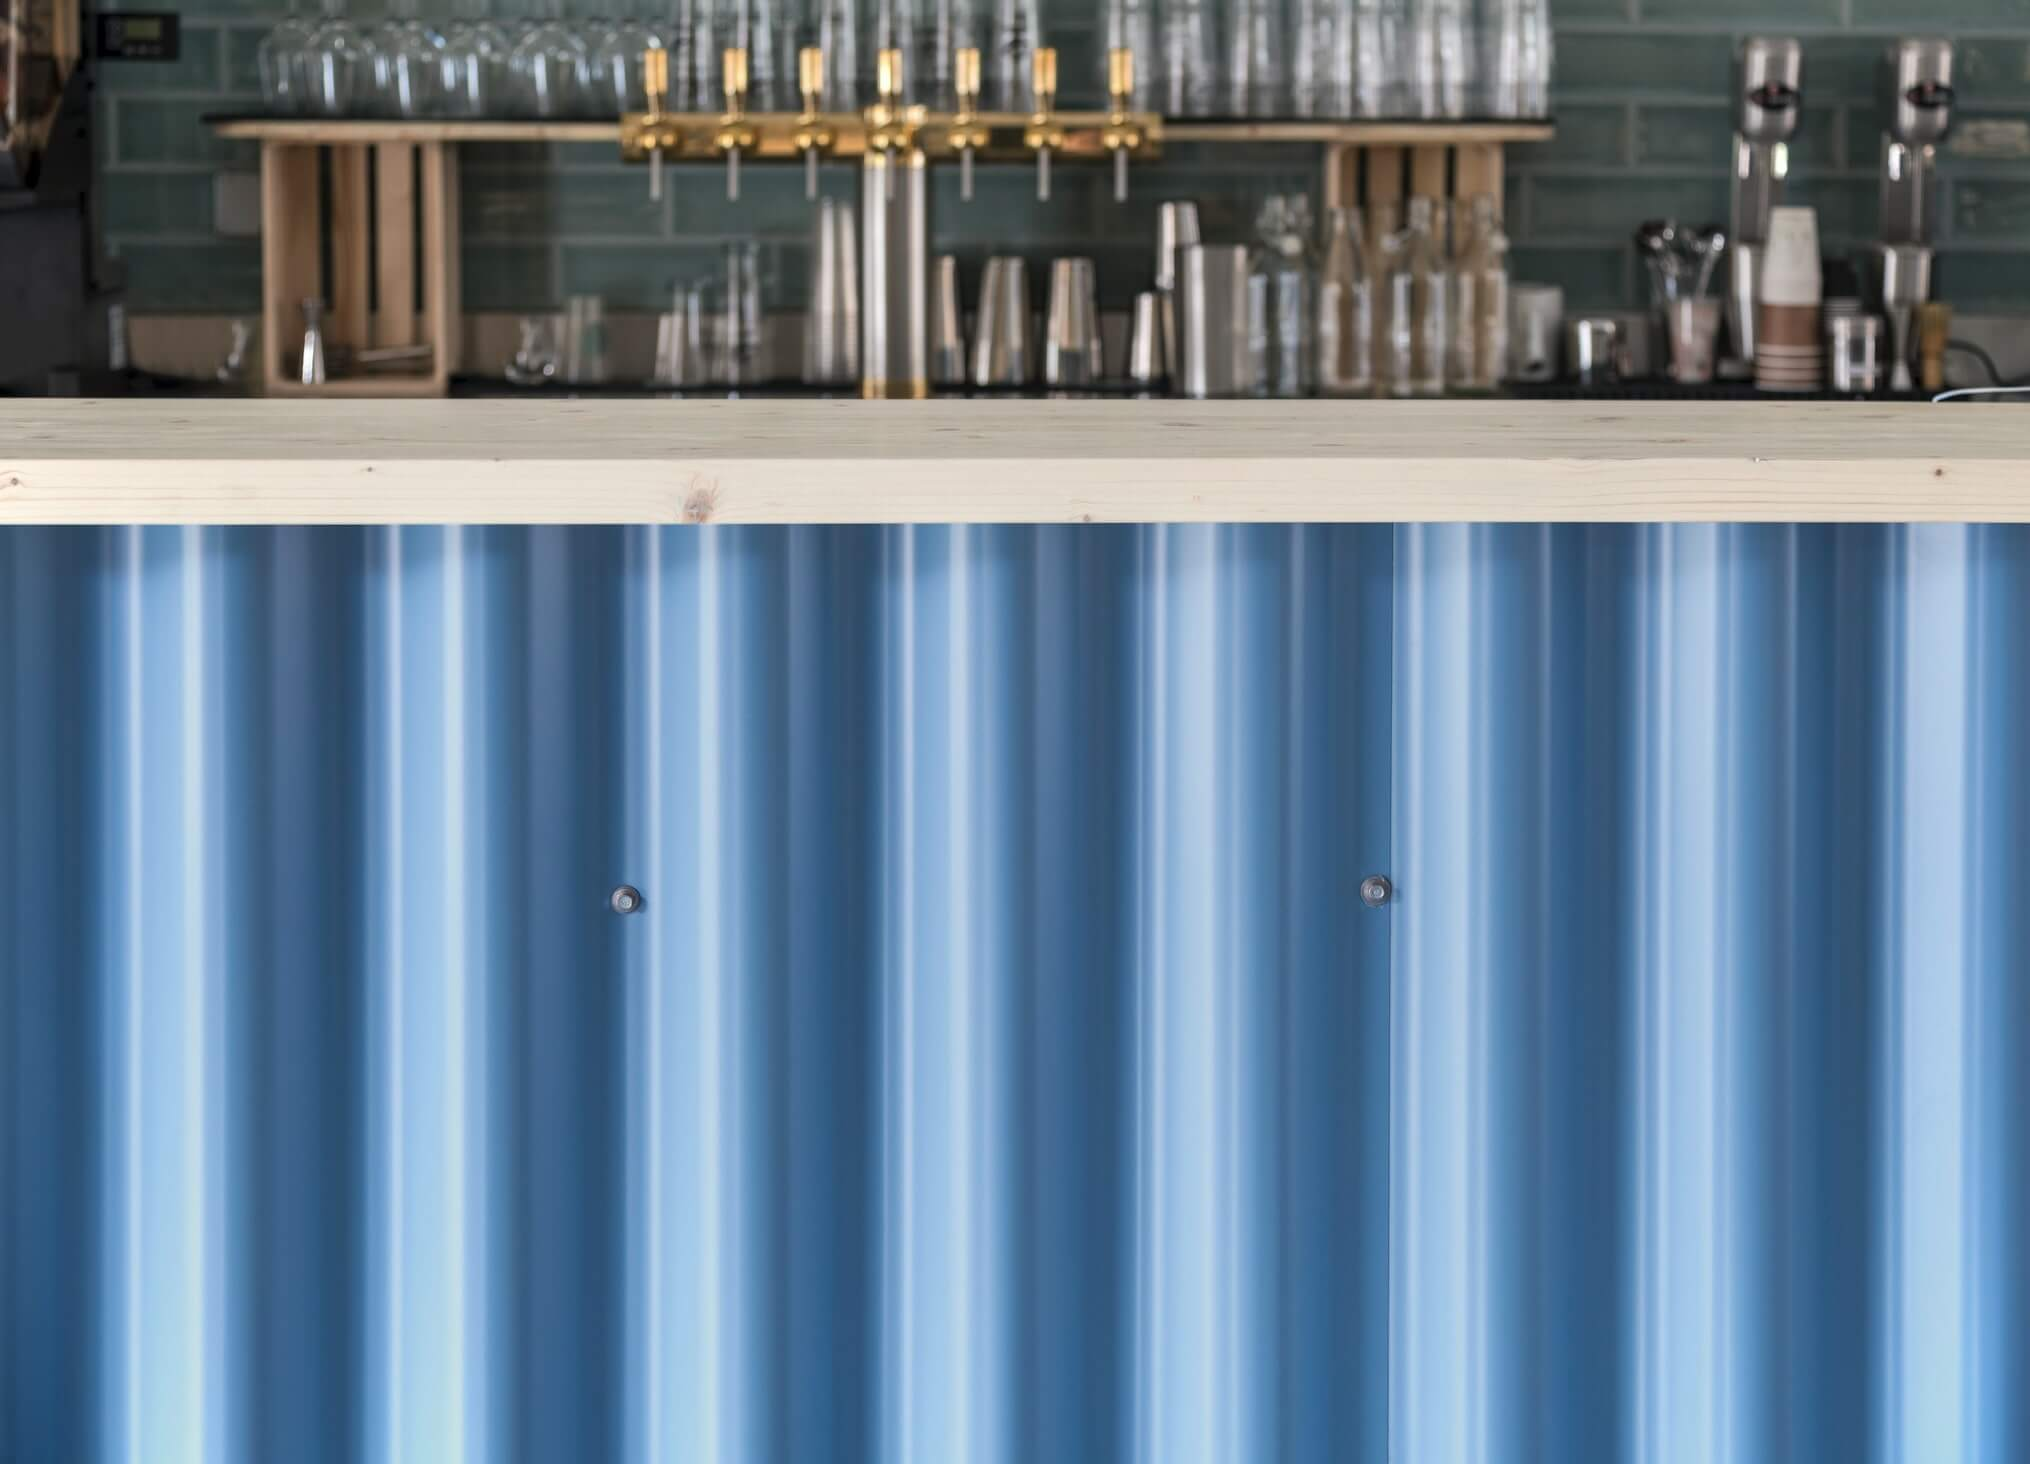 the architecture of the bar has a blue design counter